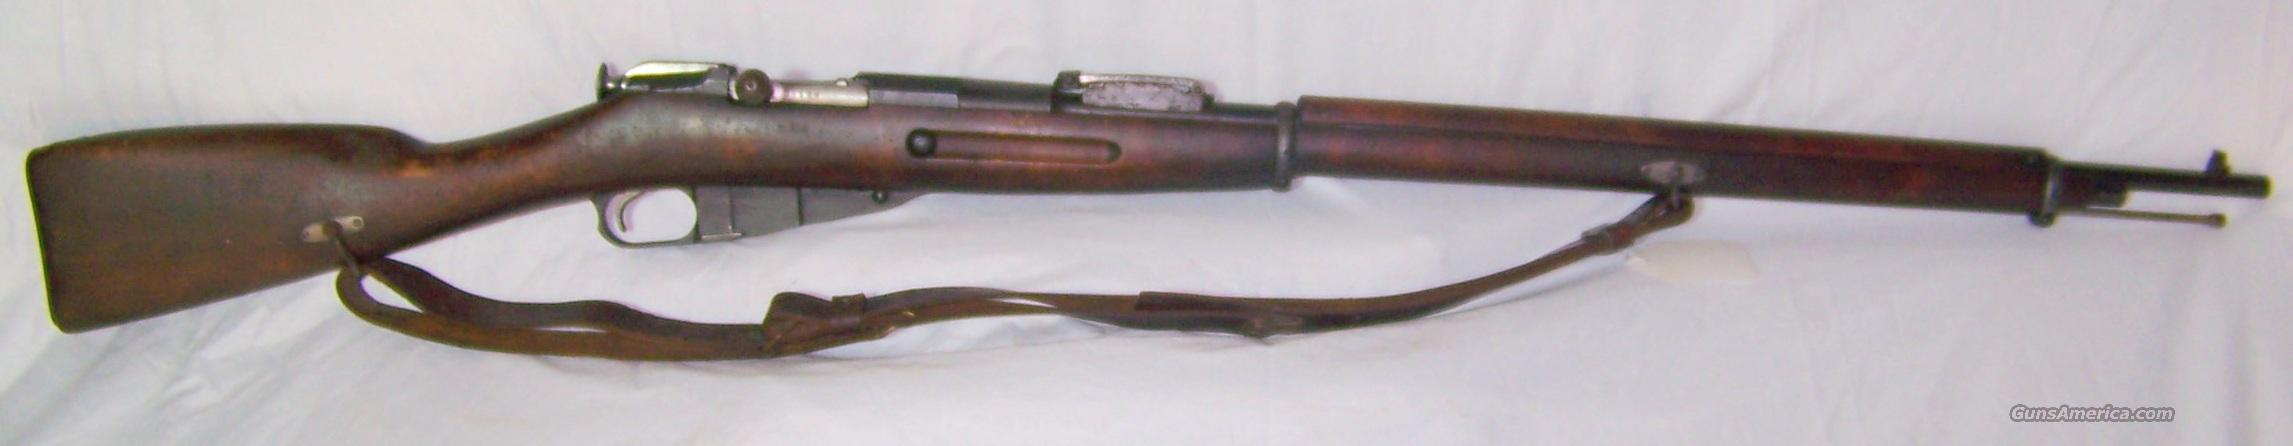 1942 Finnish M91 7.62x54R  Guns > Rifles > Mosin-Nagant Rifles/Carbines